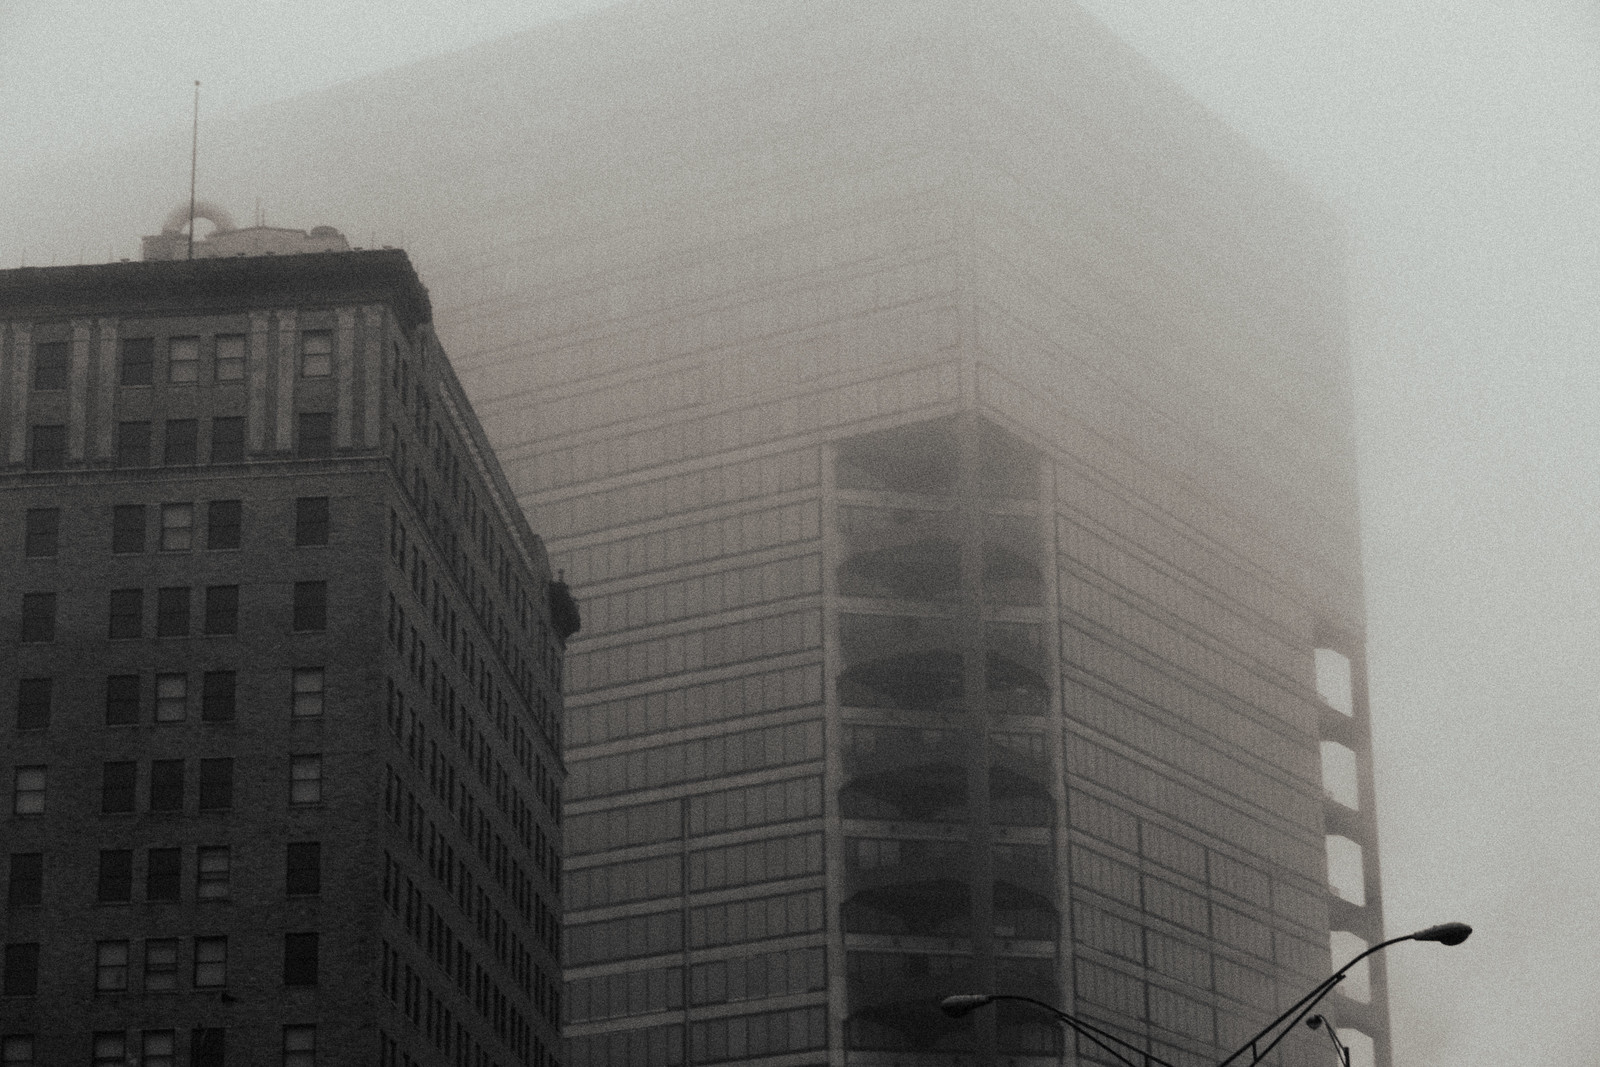 Downtown Atlanta in Fog, 2015 Jan